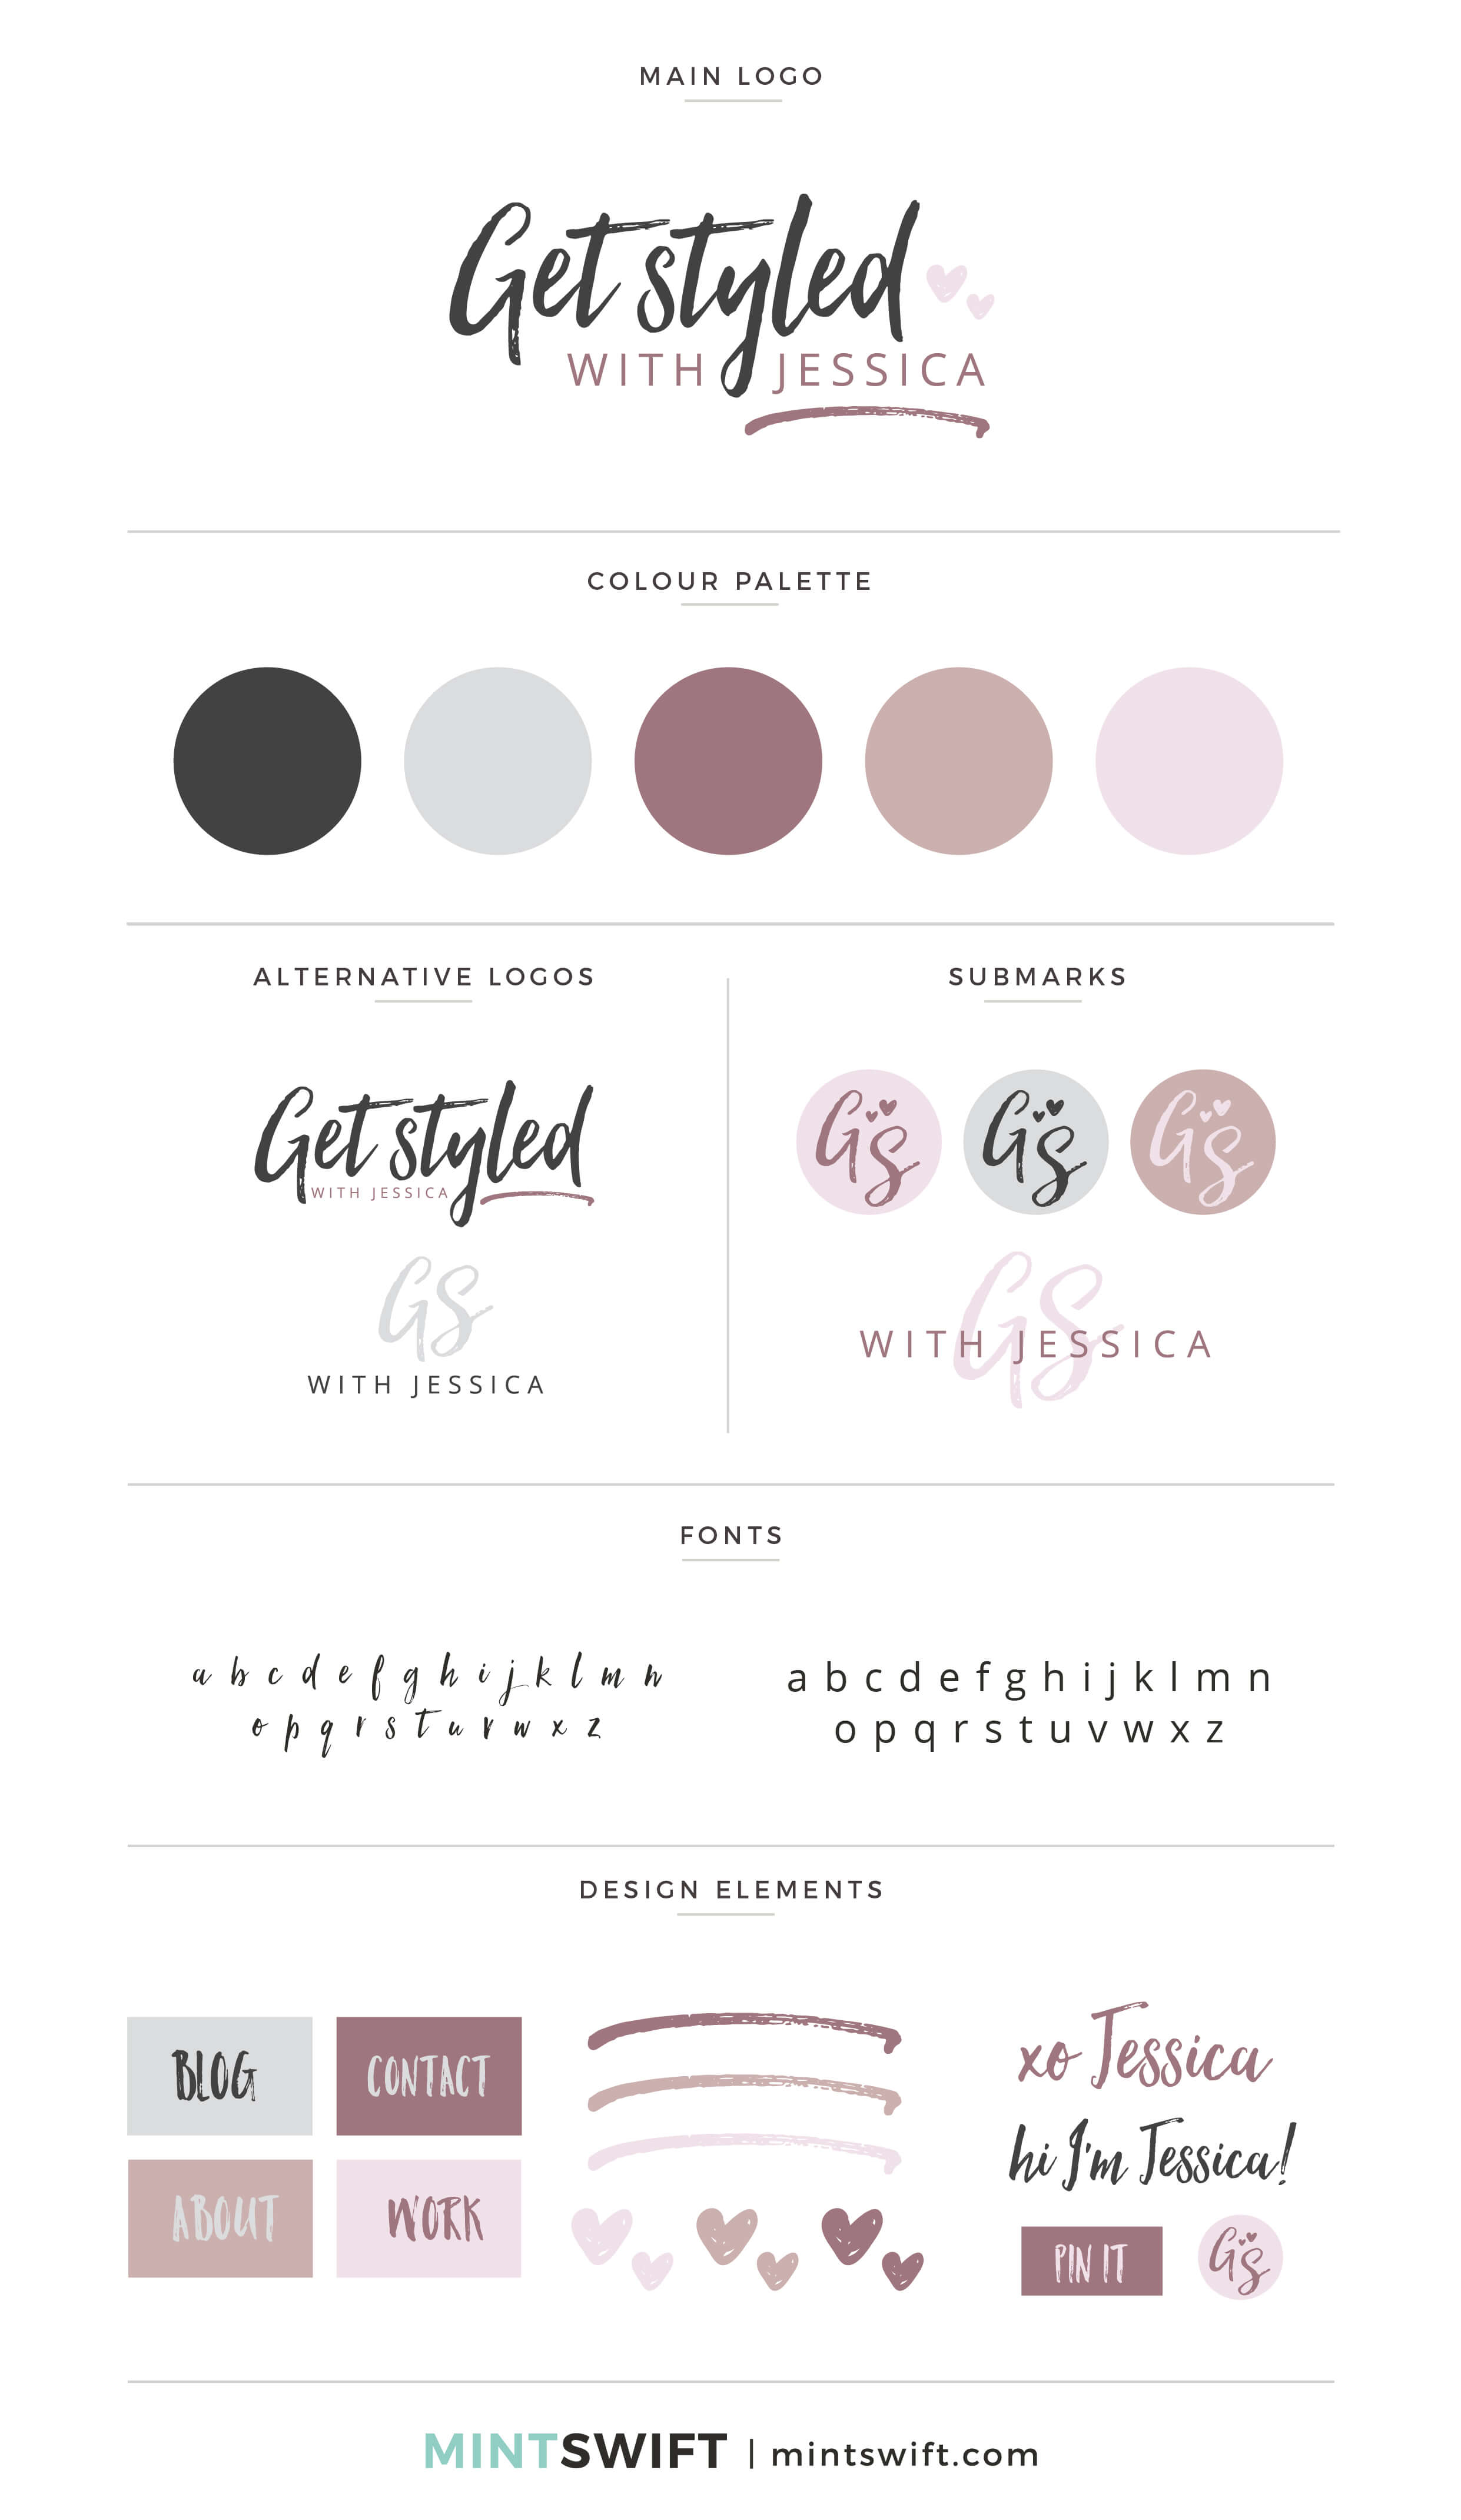 Get Styled With Jessica - Brand Board - Brand Design Package - MintSwift